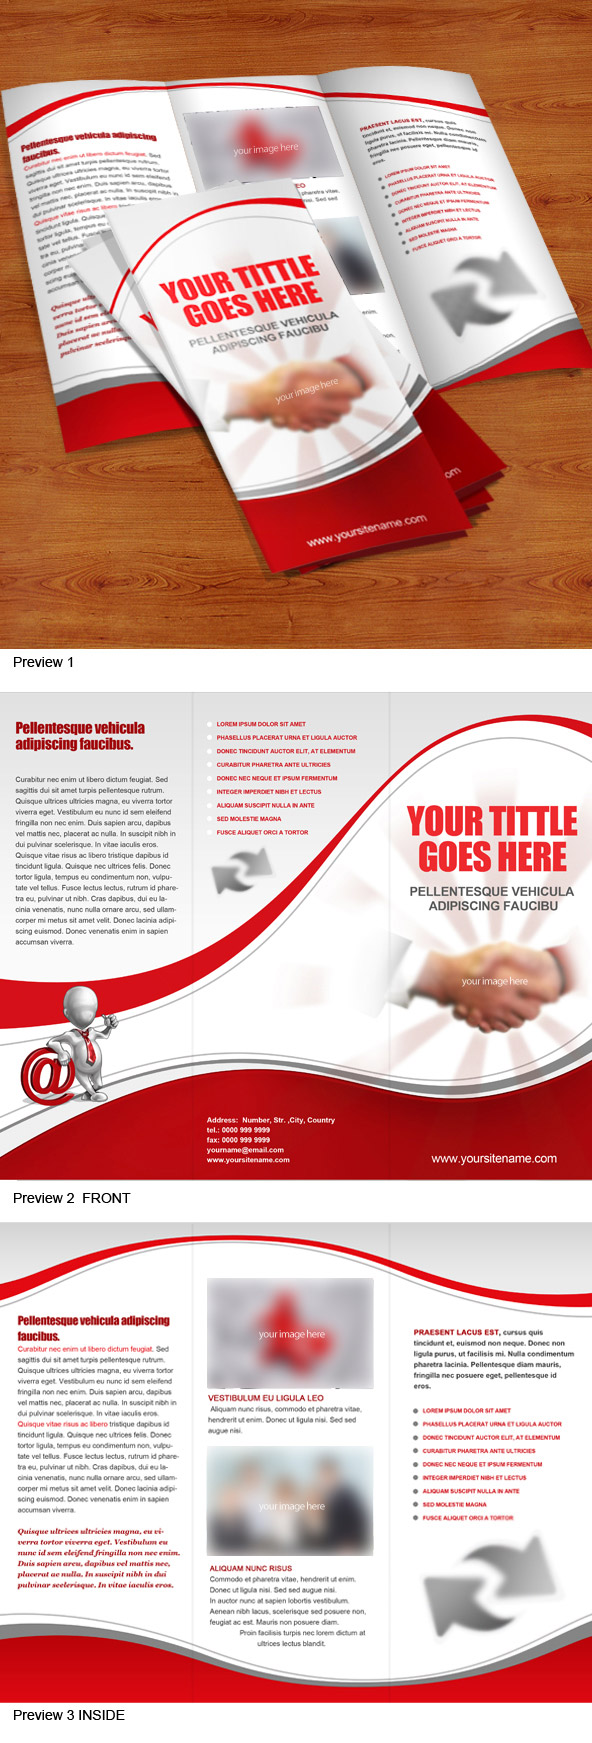 Free PSD 3 Fold Brochure Preview Big